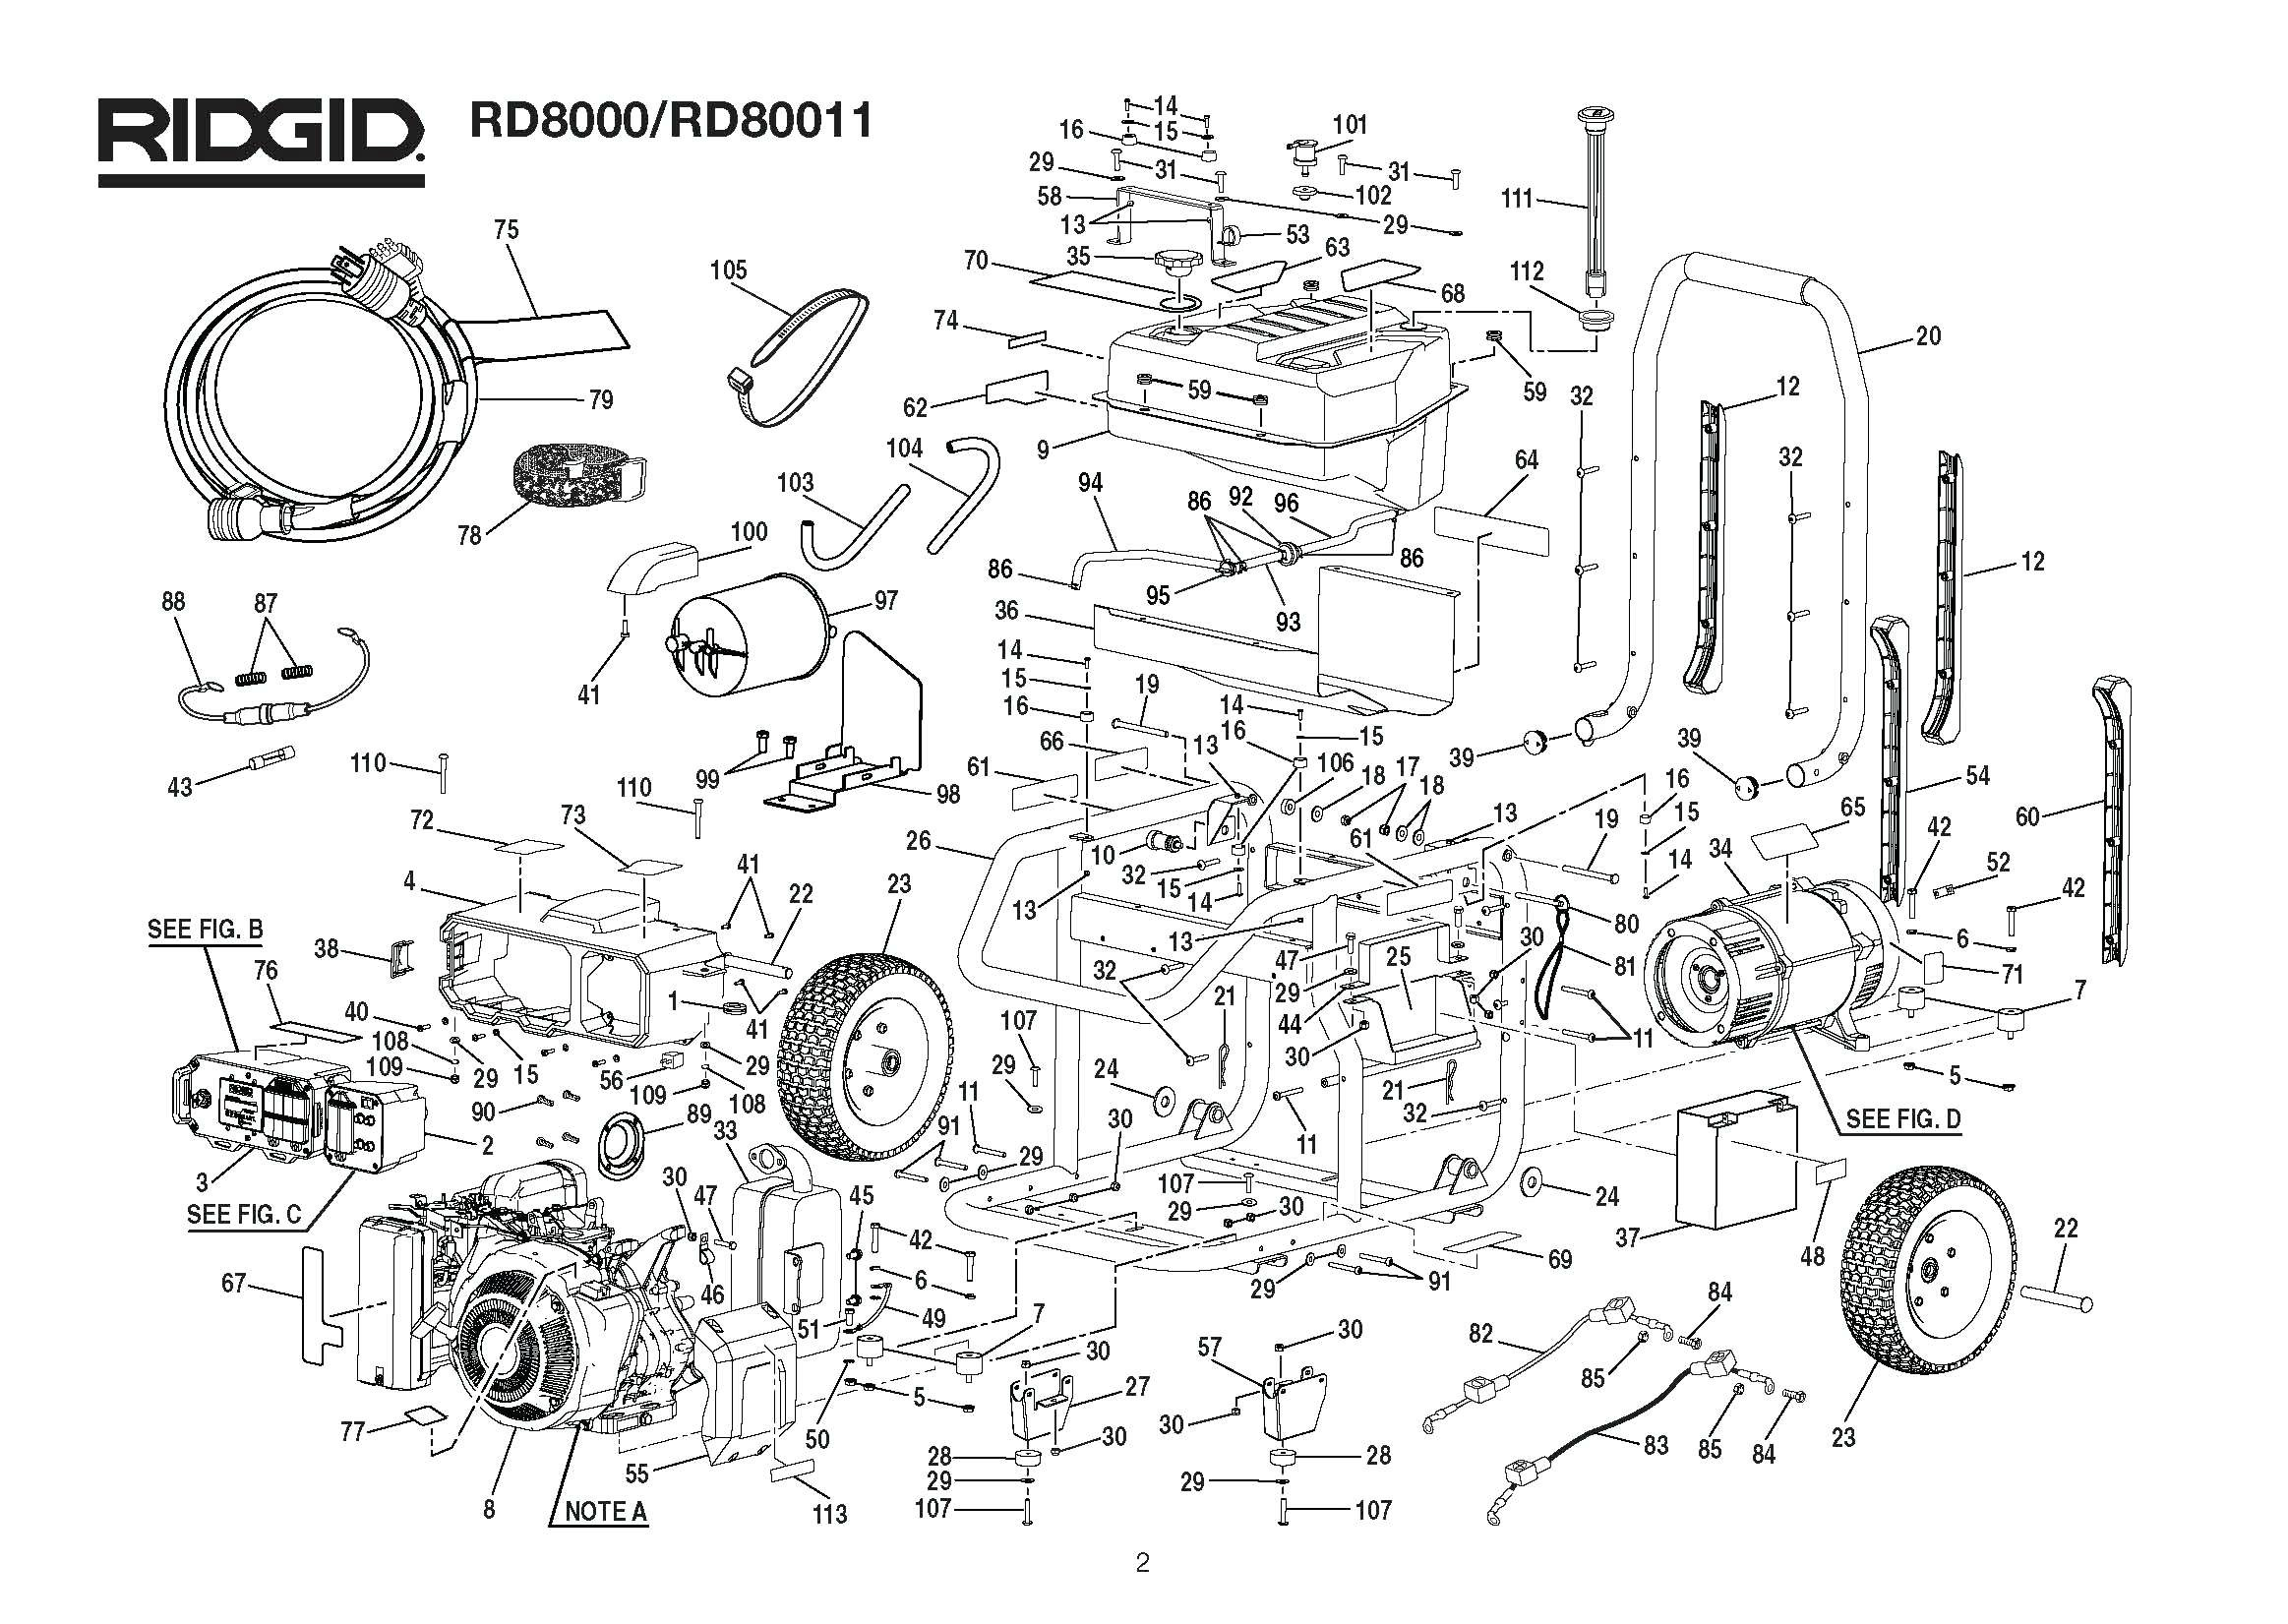 Subaru Outback Engine Diagram Another Blog About Wiring Driving Light 1997 Residential 2003 2001